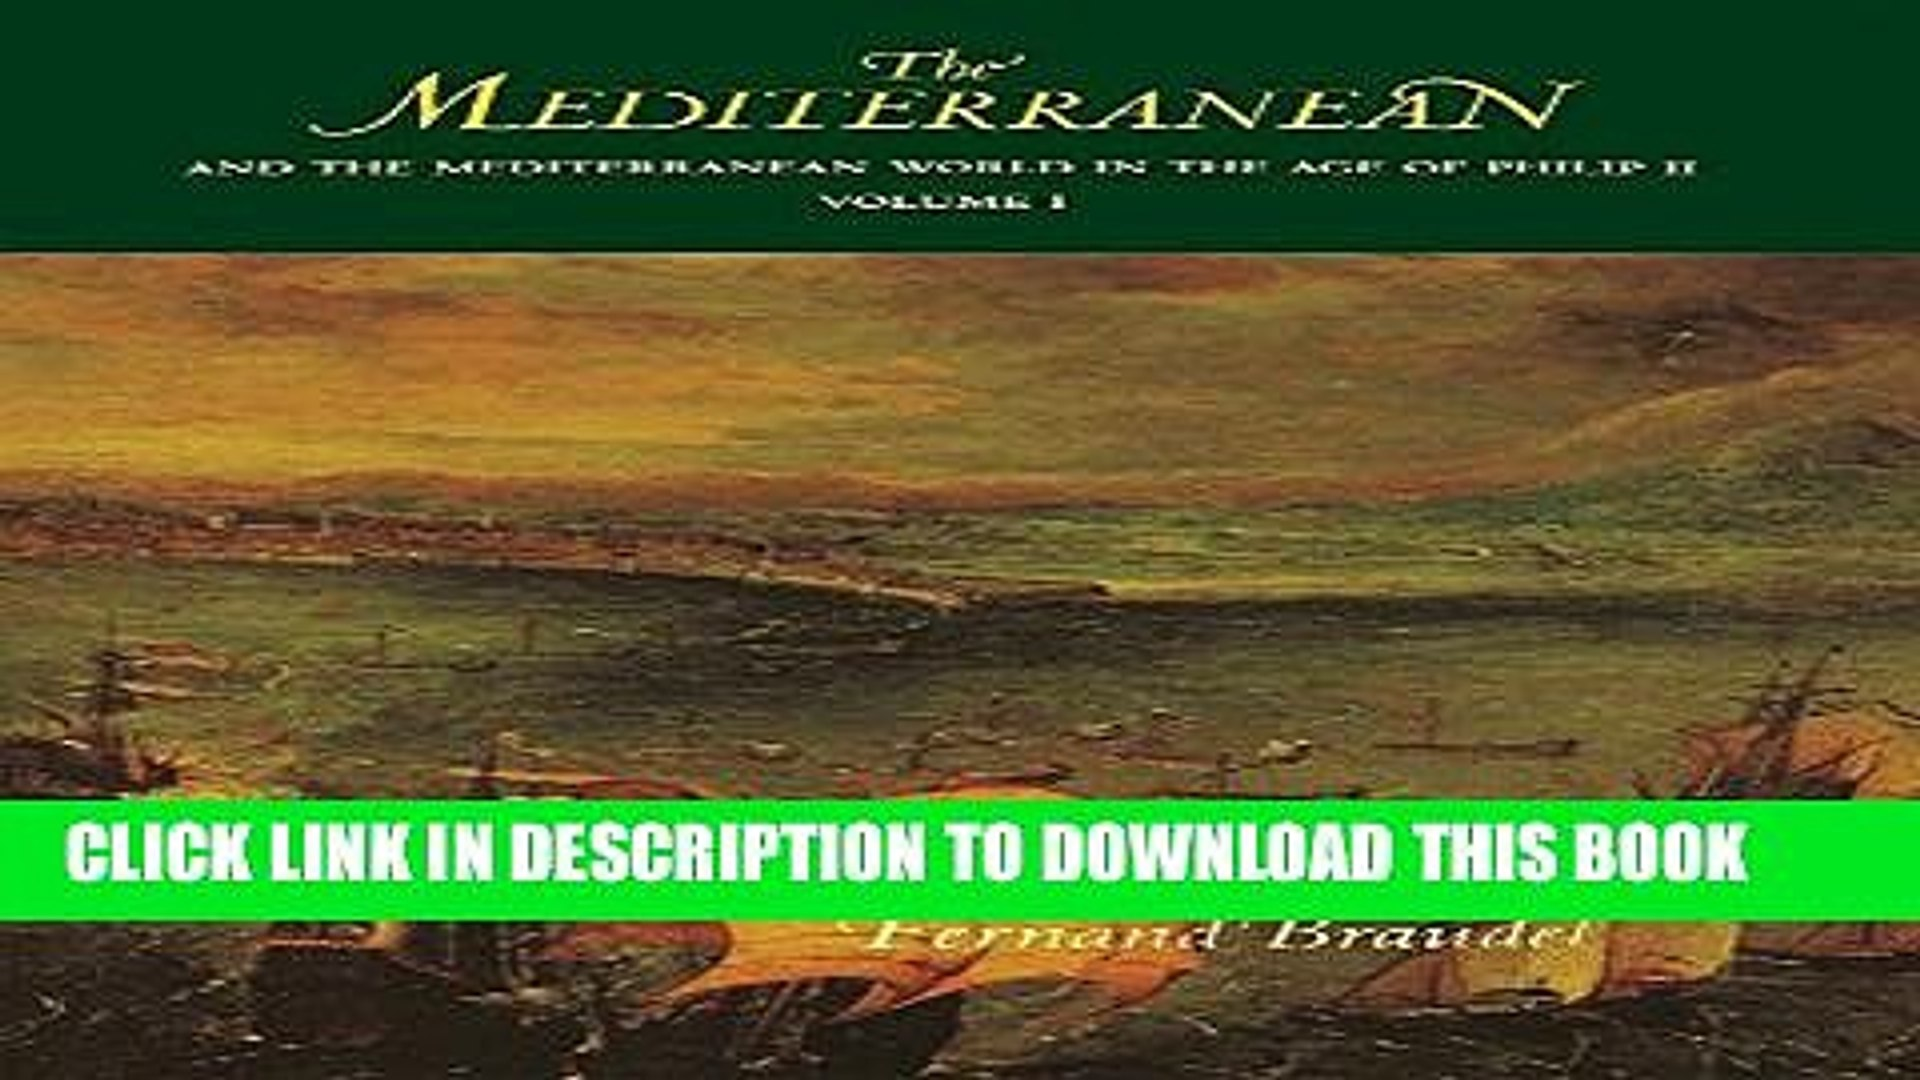 [PDF] The Mediterranean and the Mediterranean World in the Age of Philip II: Volume I Popular